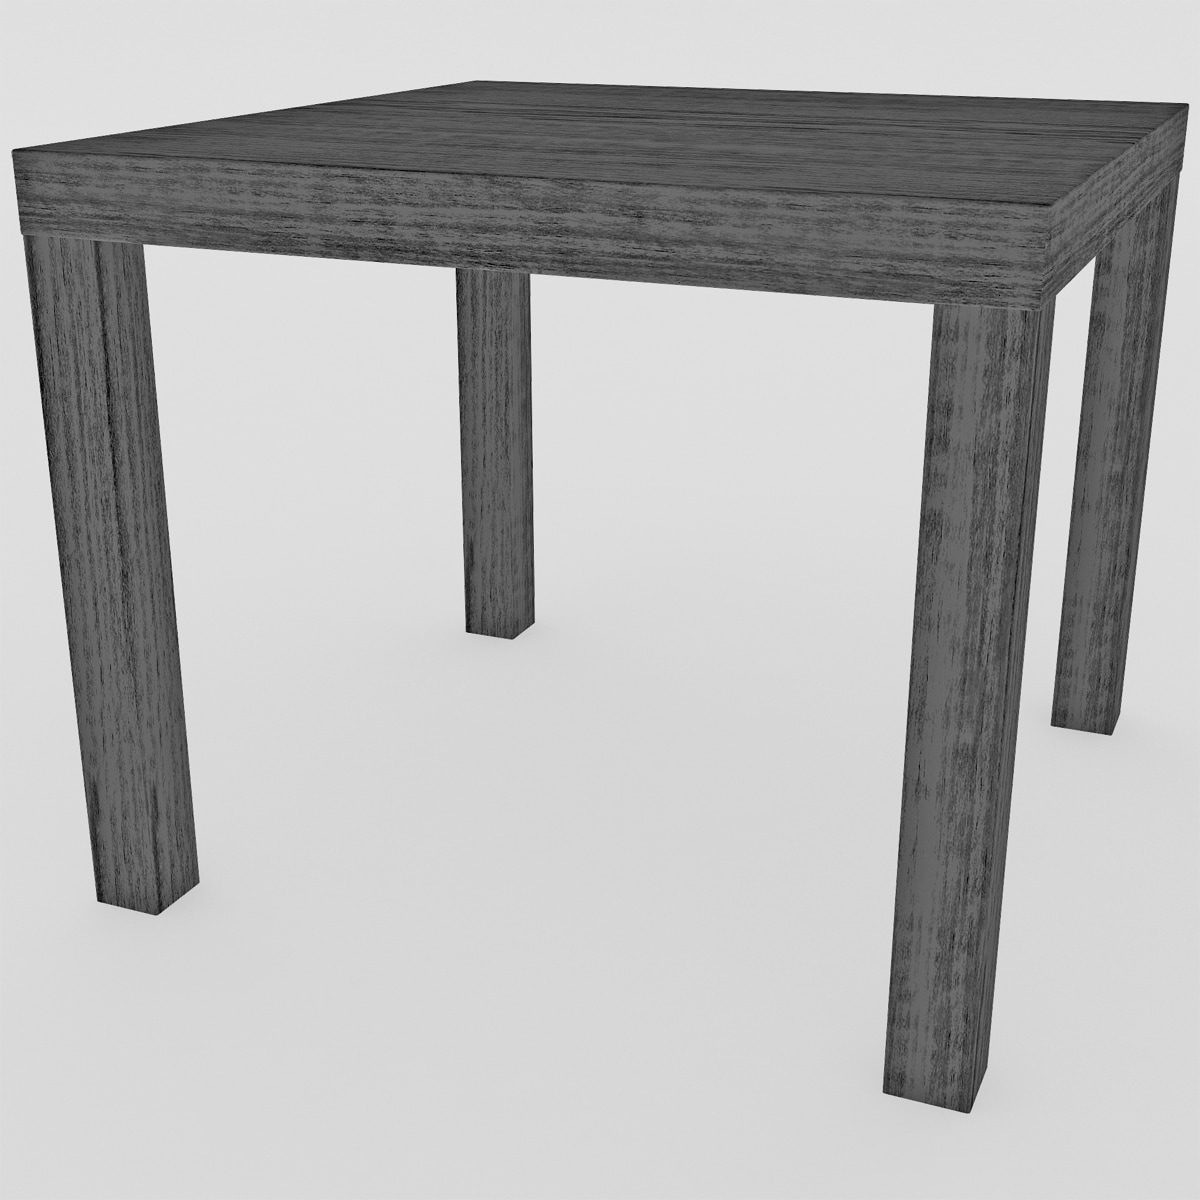 ikea lack table 3d model. Black Bedroom Furniture Sets. Home Design Ideas